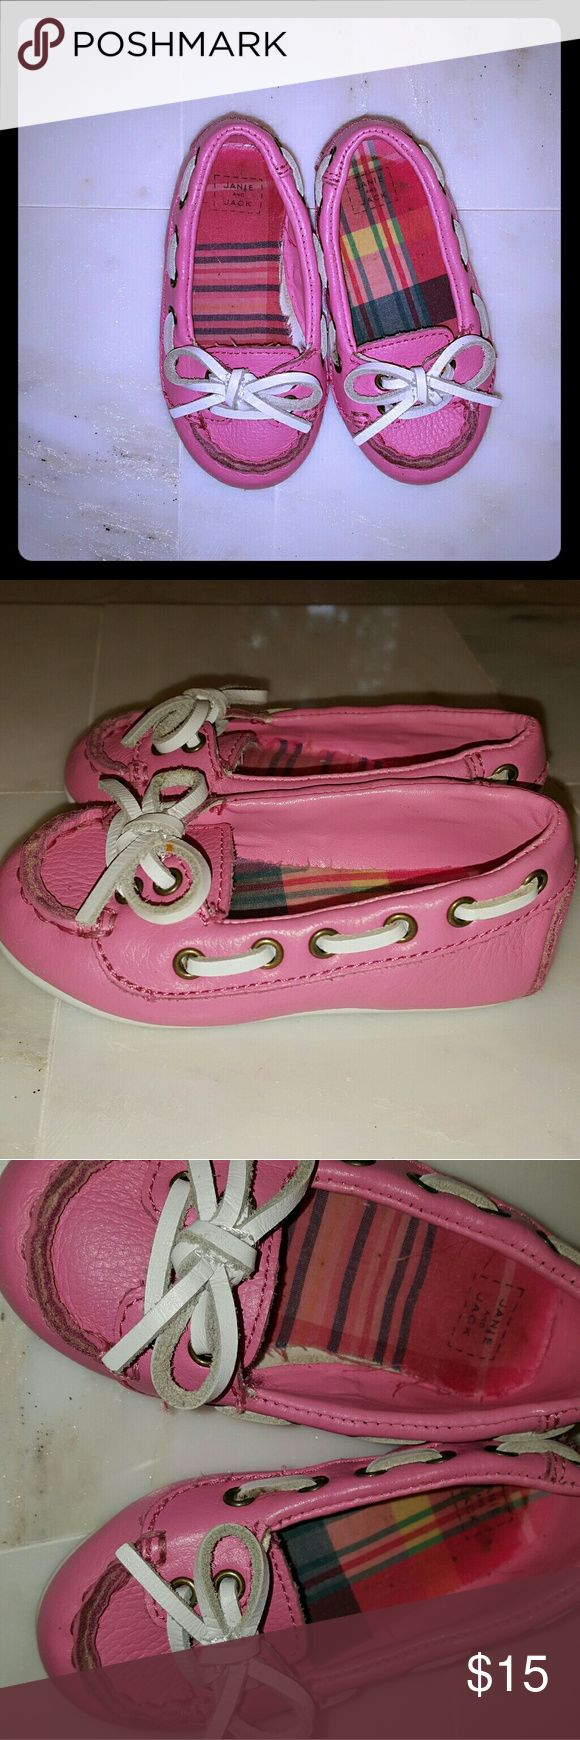 """Janie and Jack """"European Traveler""""leather loafers So adorable!  Pink leather """"European Traveler"""" girls loafers size 3 by Janie and Jack. With white leather stitched cord tie. Good,  clean condition.  They have been used multiple times,  but these are nice sturdy shoes.  Have a few scuffs on front,  and the fabric lining of the footbed is a little loose on one.  As shown in picture four. Janie and Jack Shoes"""